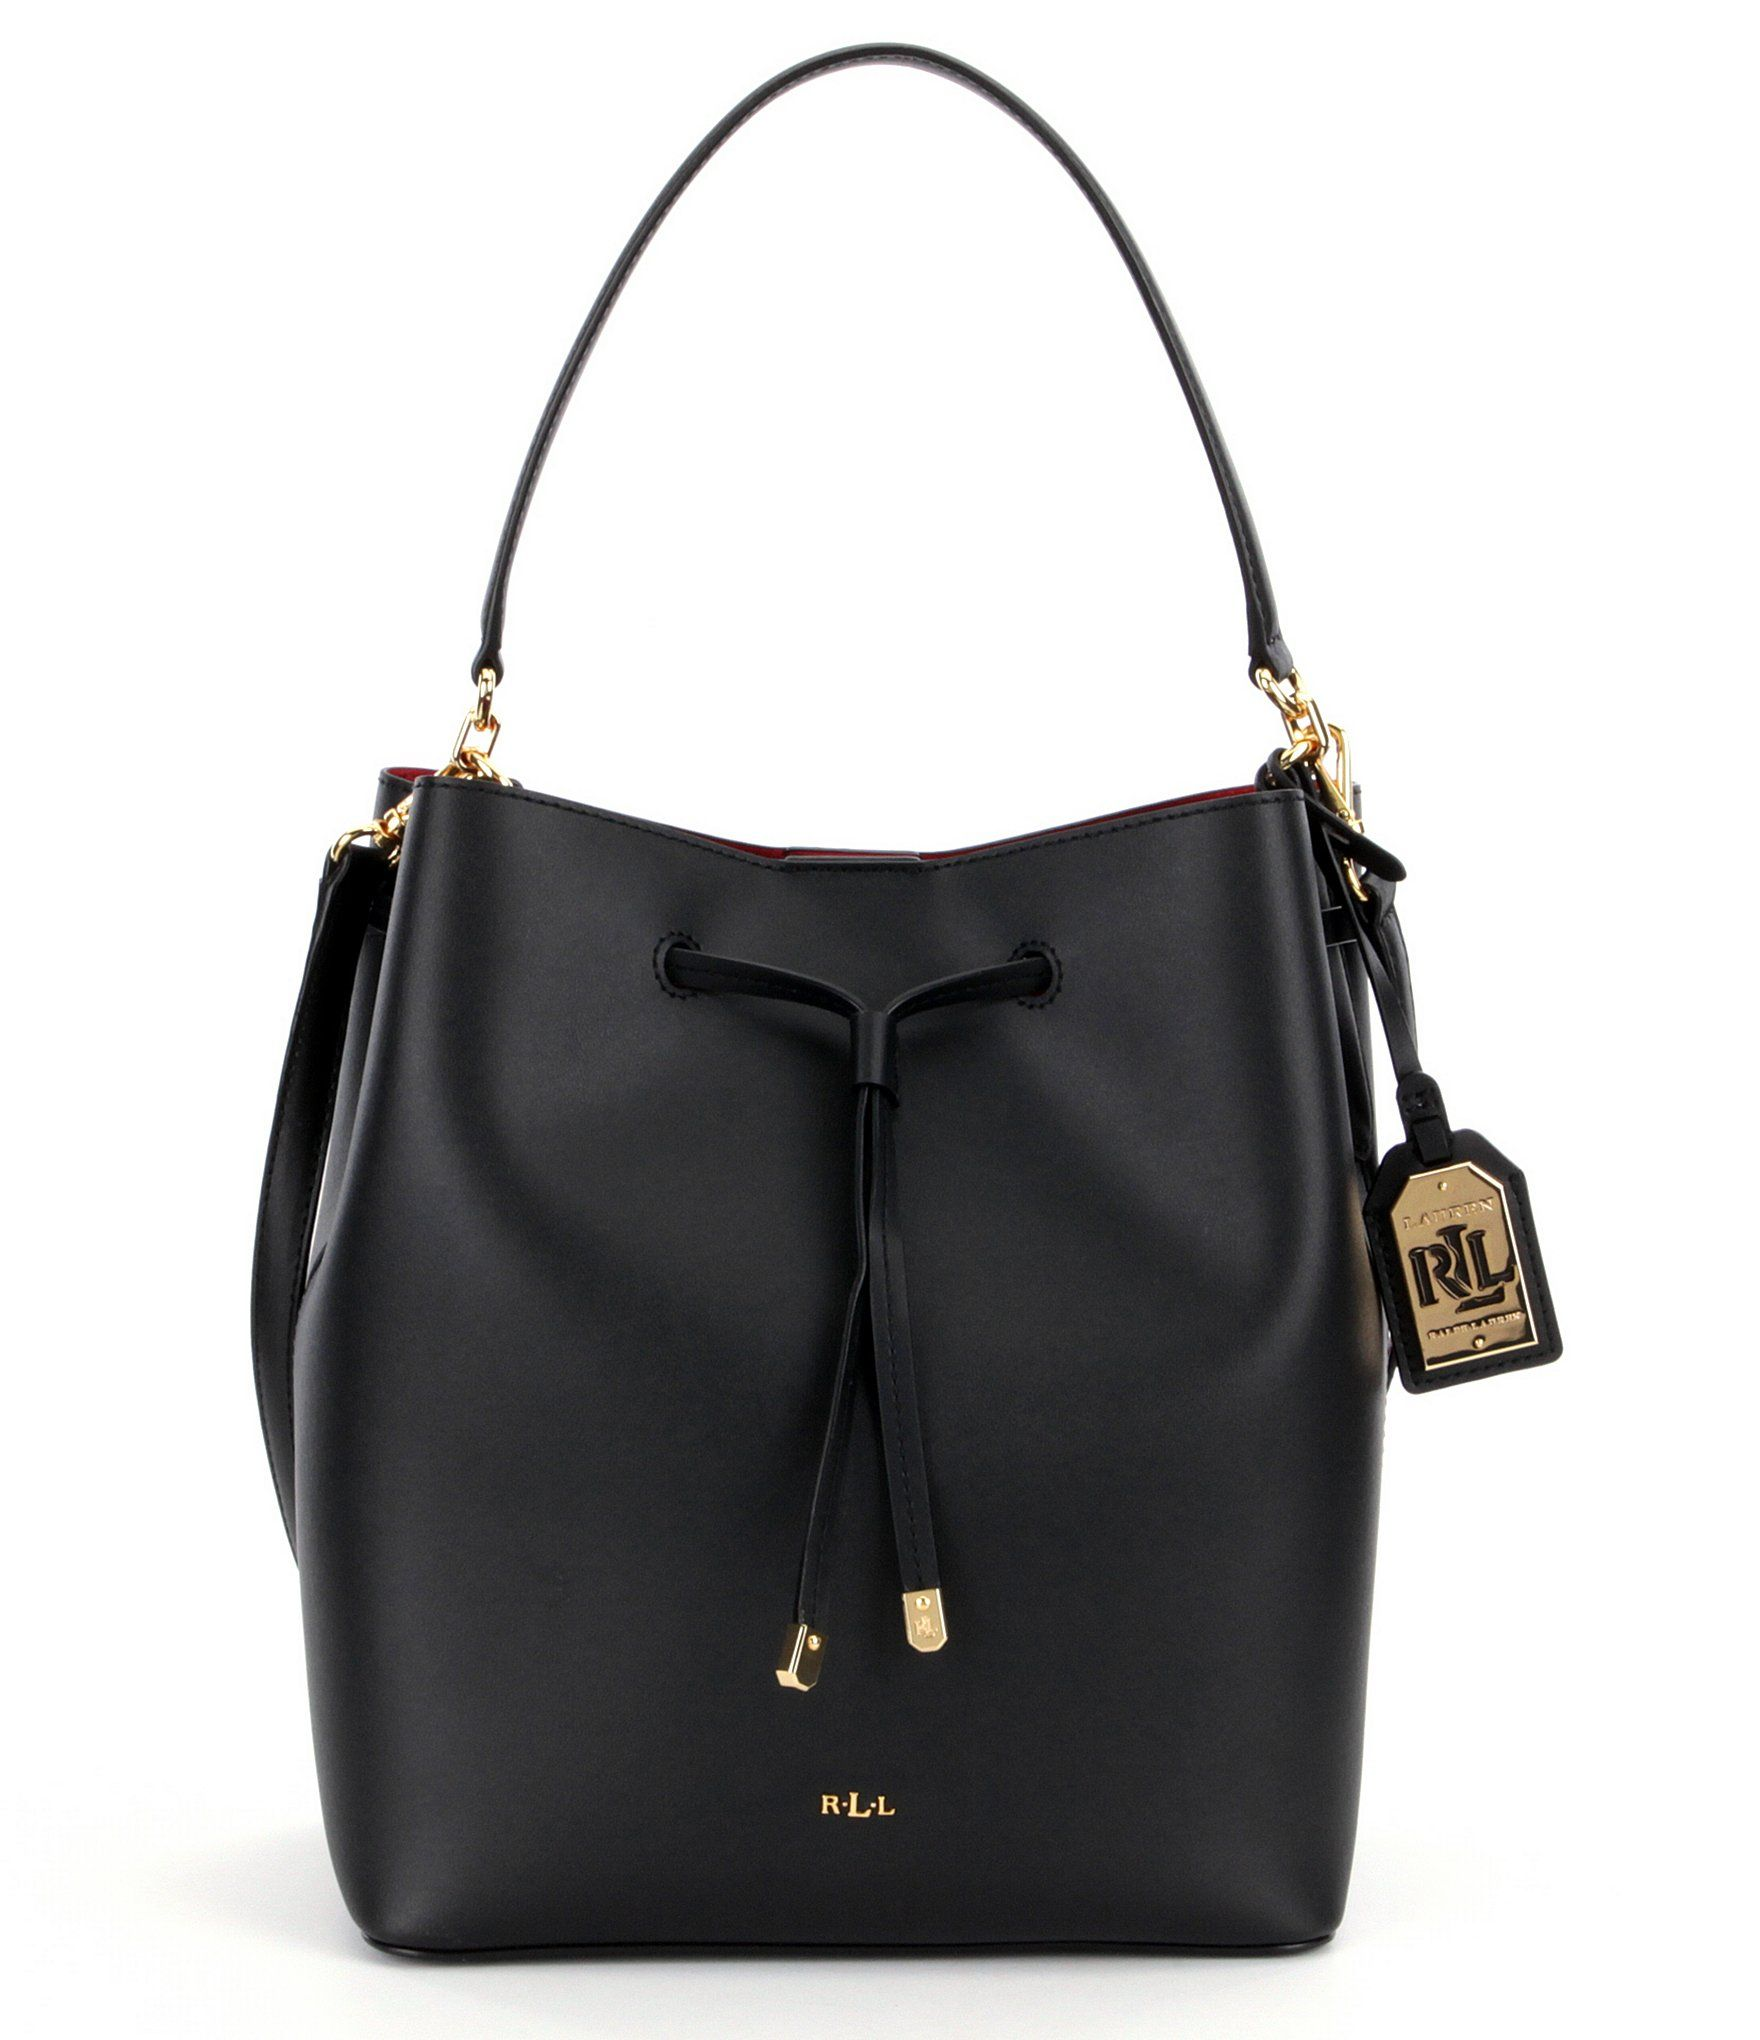 debd104c1008 Shop for Lauren Ralph Lauren Debby Drawstring Bag with Pouch at  Dillards.com. Visit Dillards.com to find clothing